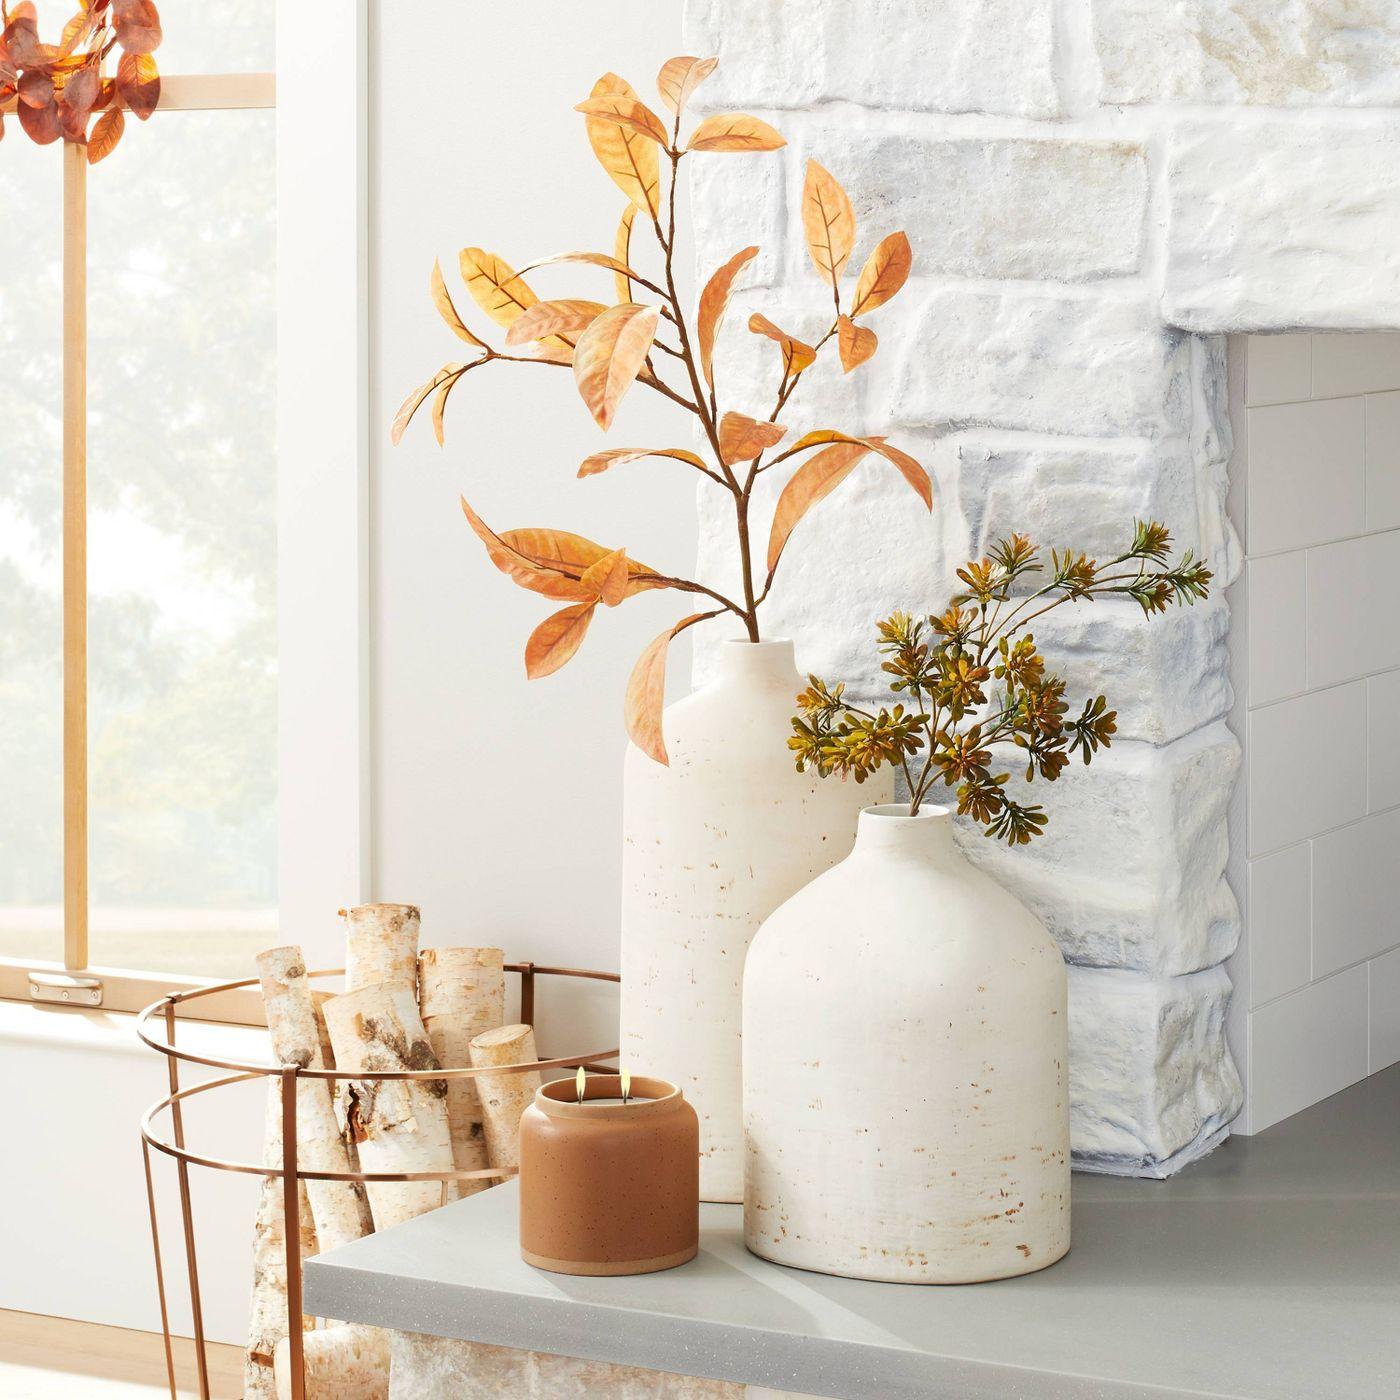 Hearth & Hand with Magnolia Faux Rusted Croton Plant Stem